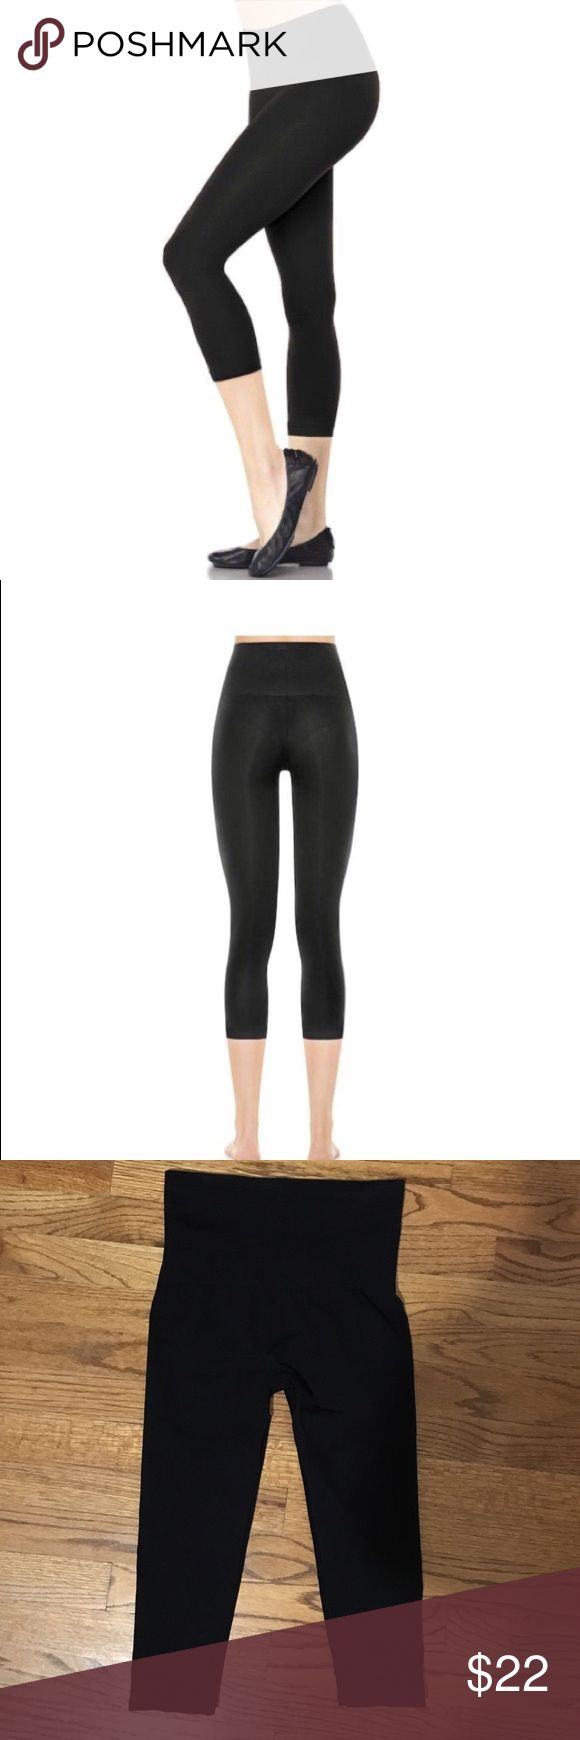 """Assets by Spanx cropped legging Perfect condition (worn and laundered once). I am 5'5"""" and these hit a little higher on my calf than shown in the picture. 92 nylon, 8 spandex. Smoke-free, pet-free home. Assets By Spanx Pants Leggings"""